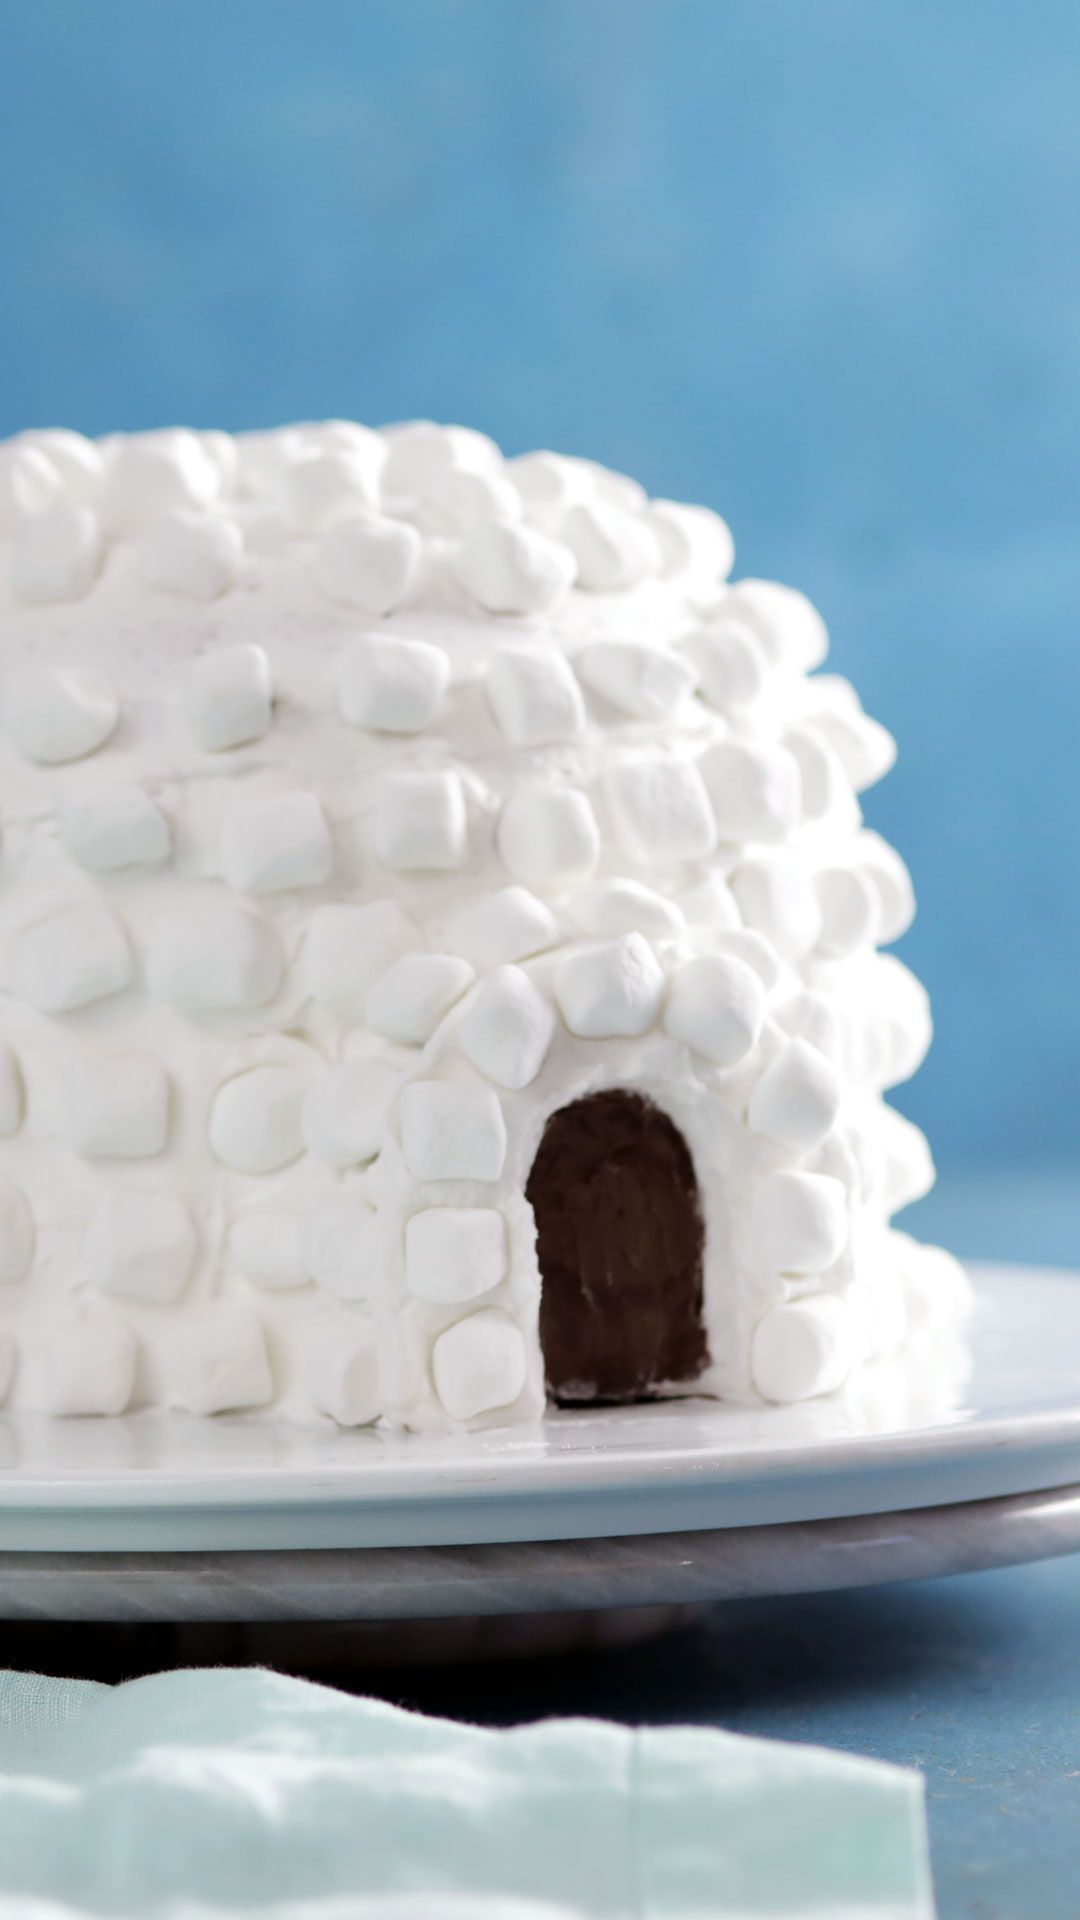 Hot Chocolate Igloo Cake,  #Cake #Chocolate #Hot #Igloo,  #DiyAbschnitt, Diy Abschnitt,